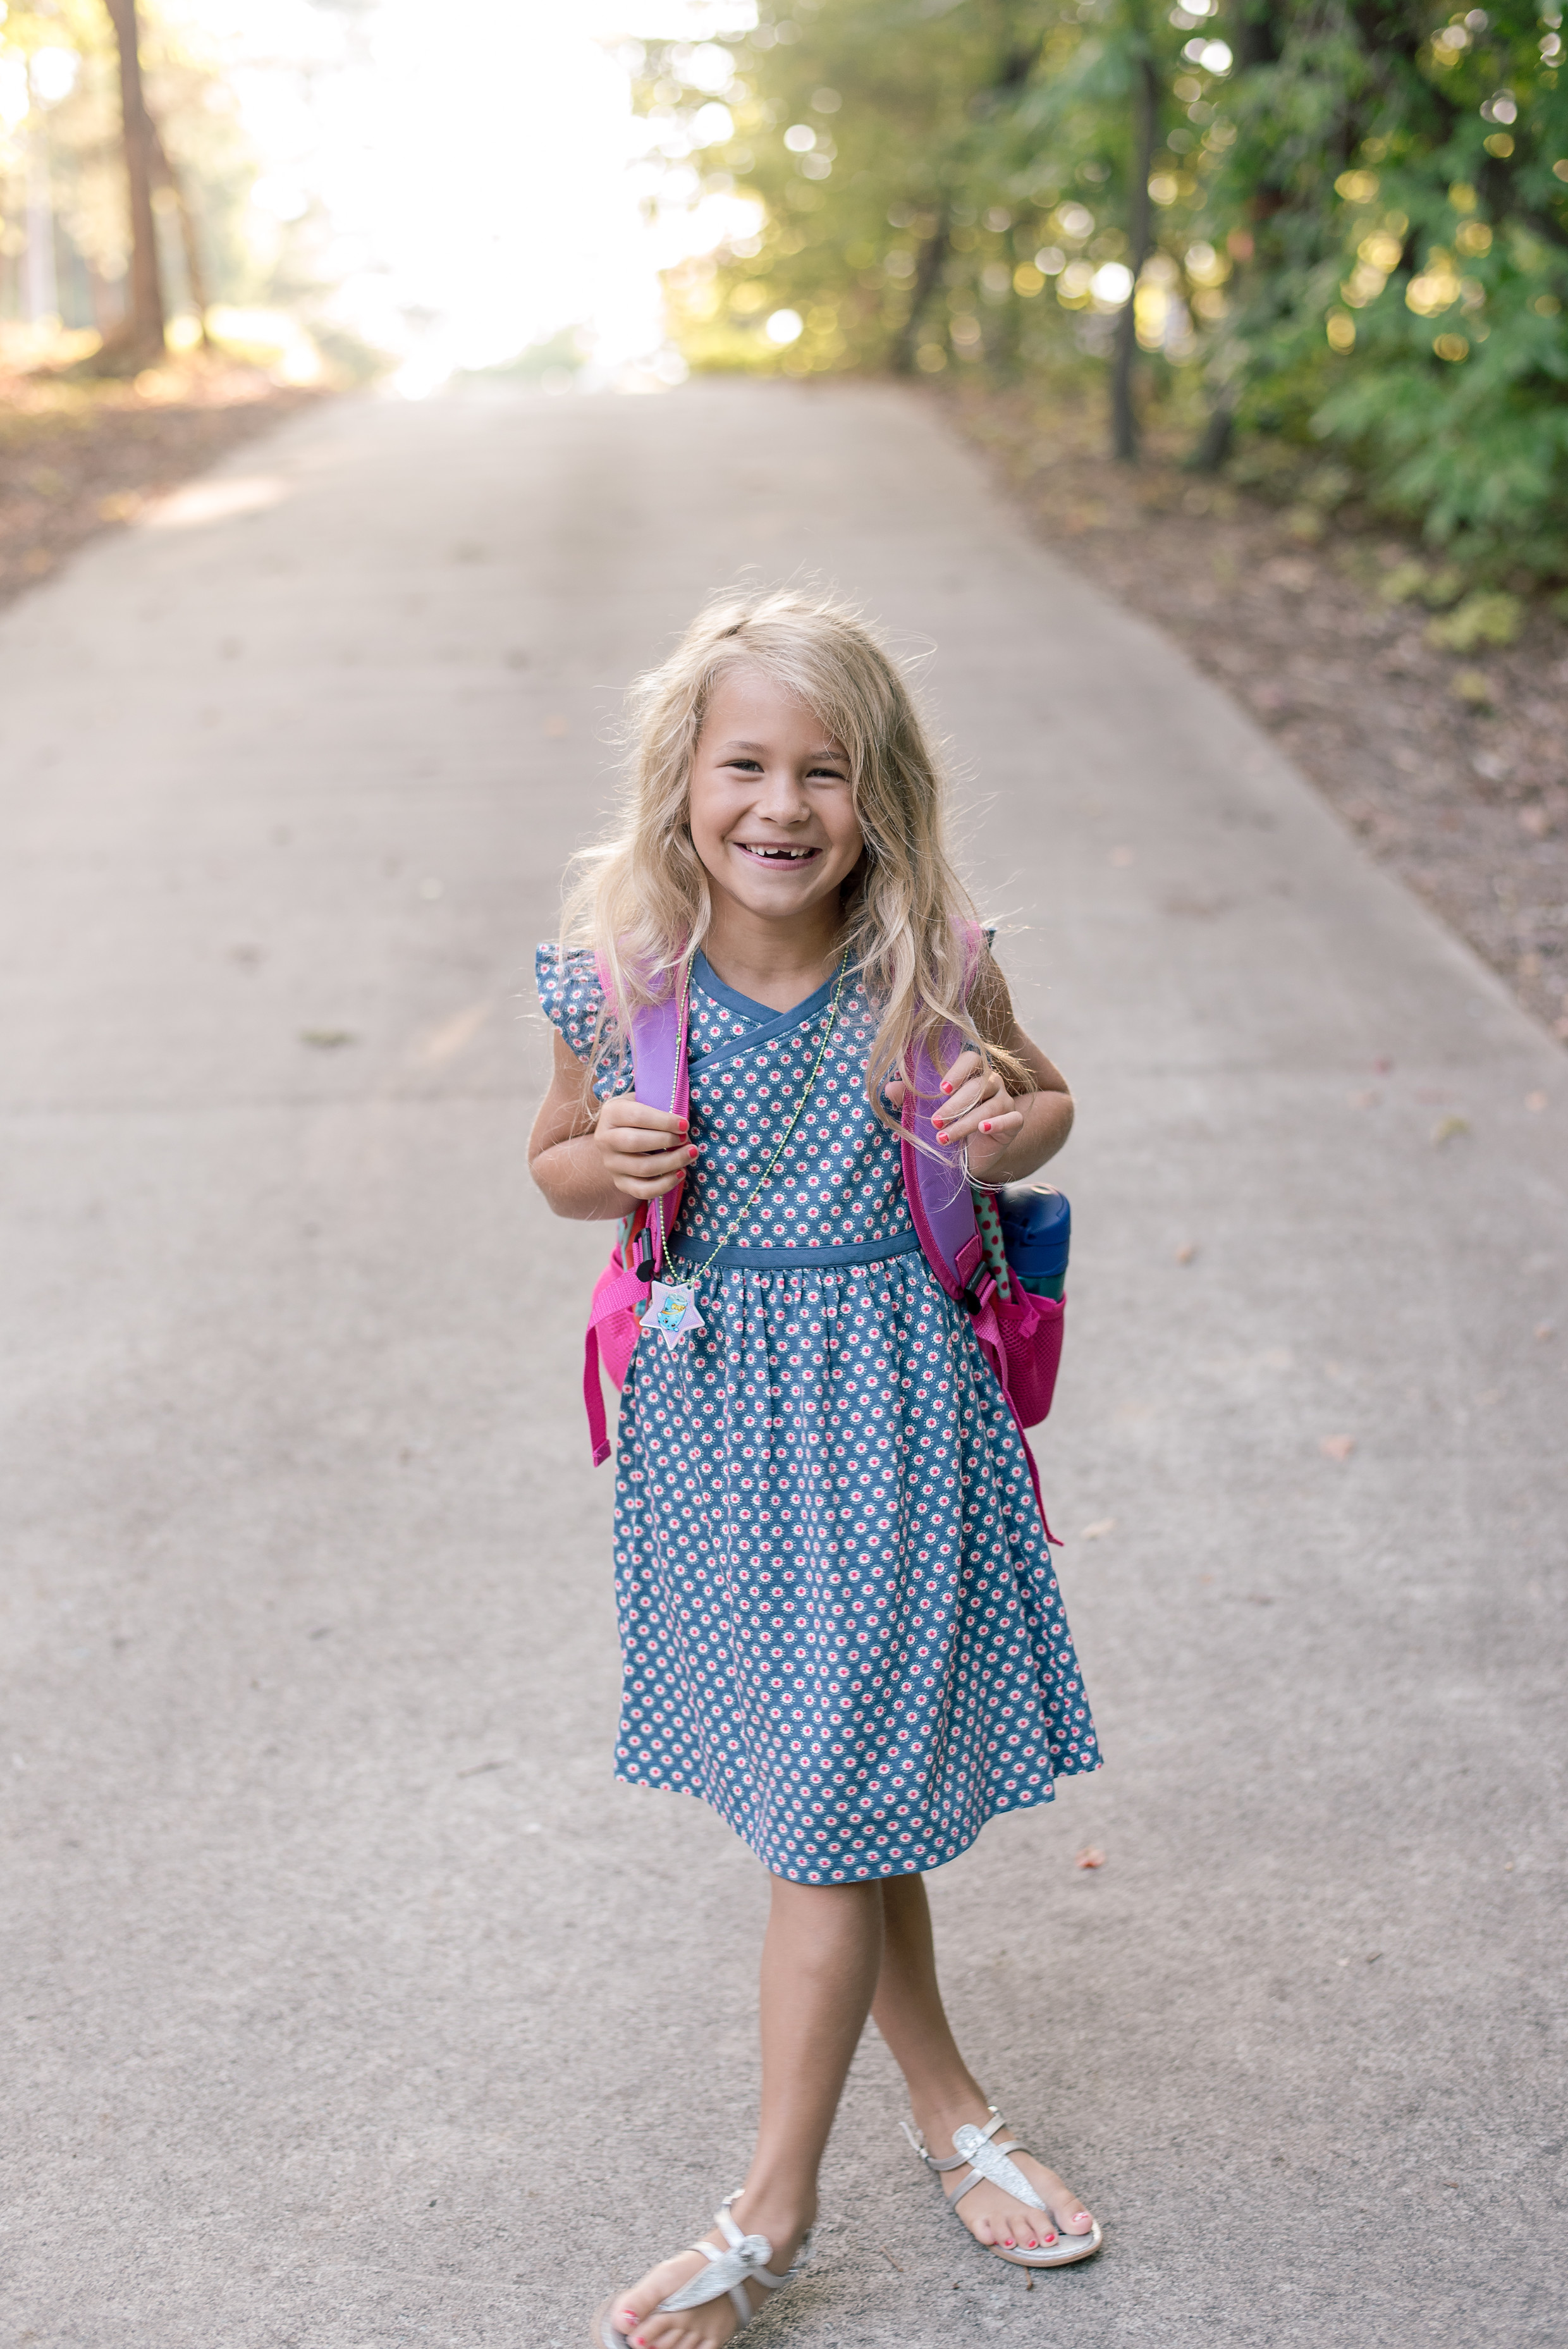 20150824-Cailee 1st Grade-13-Edit-2480x3715